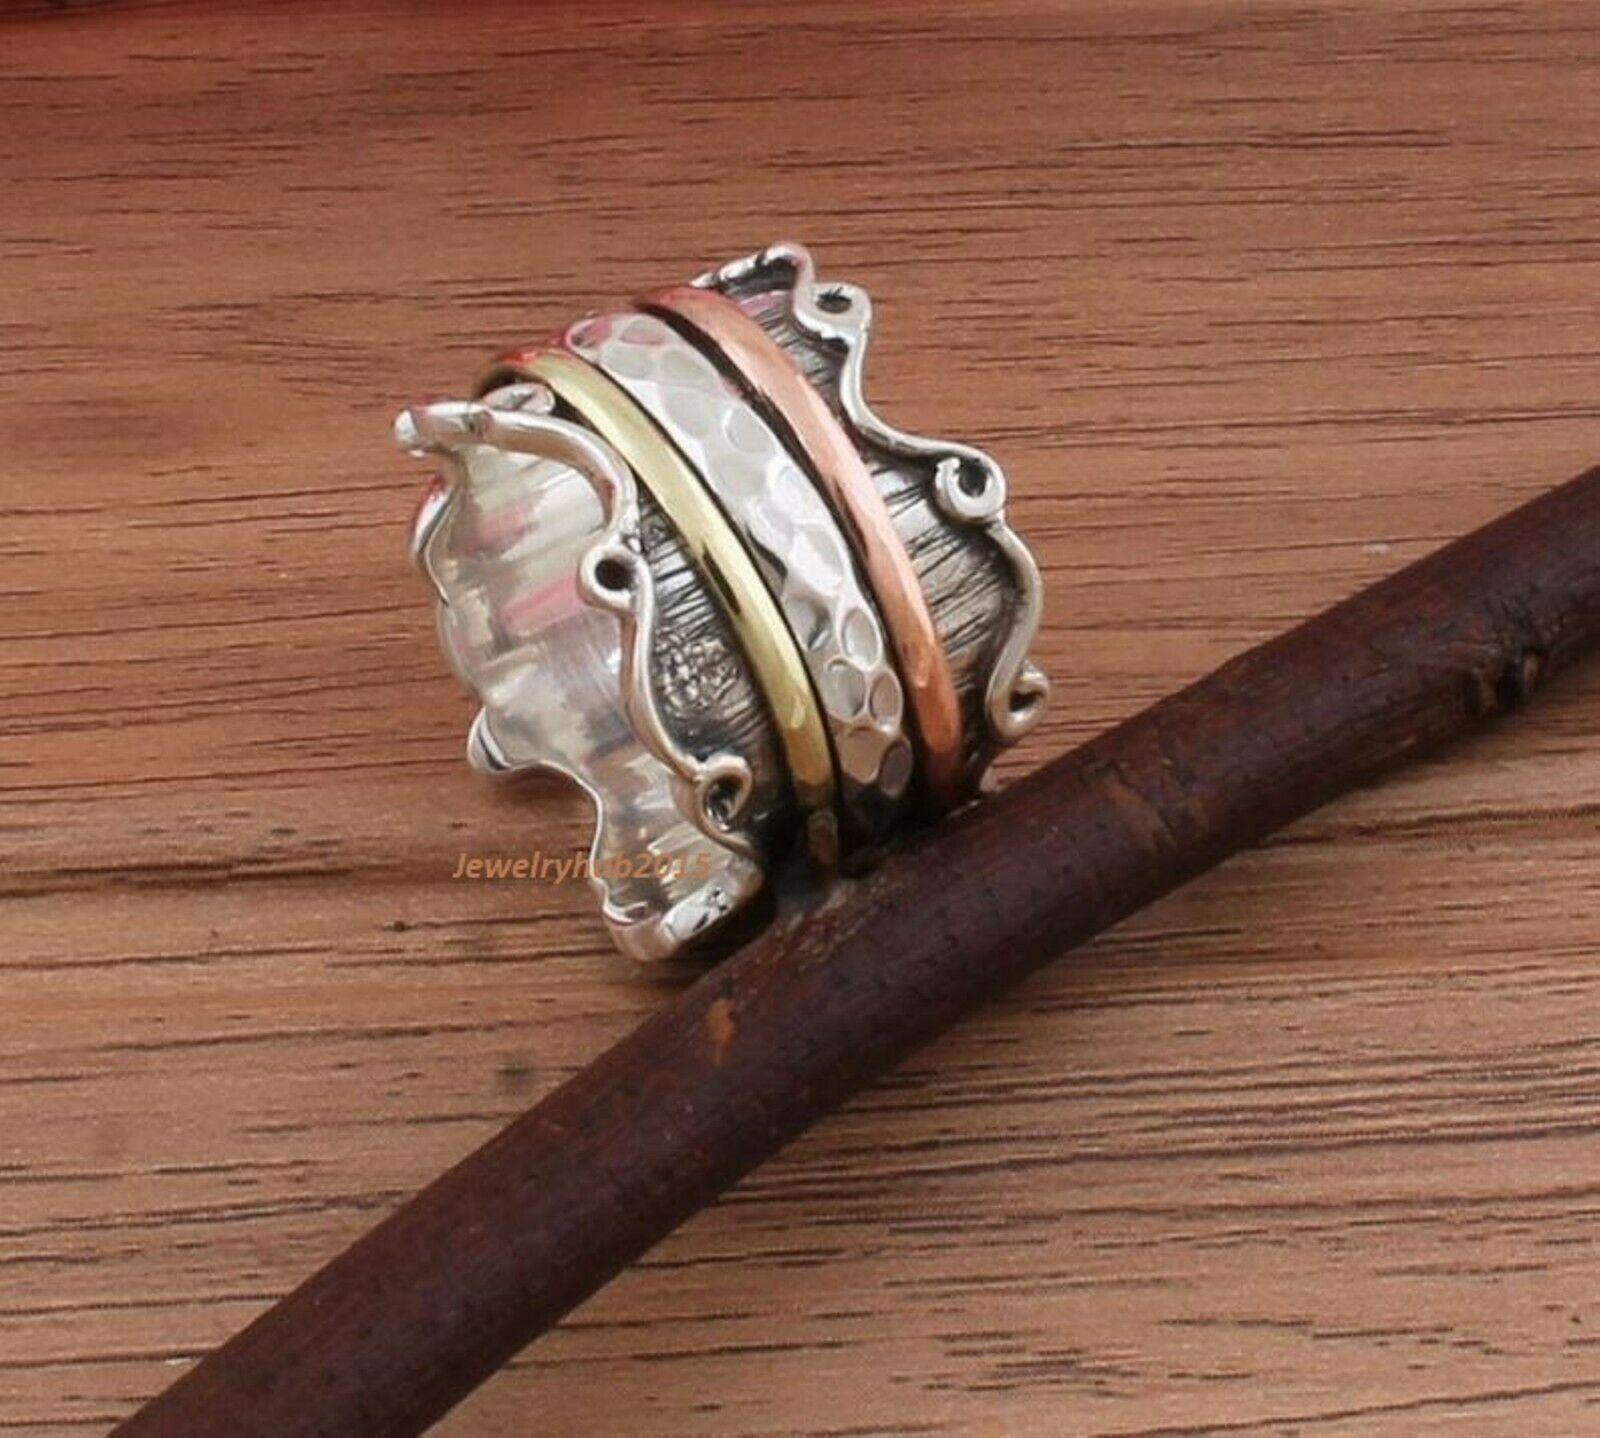 Spinner Beautiful Ring 925-Sterling Solid Silver Ring Thumb Ring One Tone Brass,One Tone Copper,With Silver Spinner Ring Three Tone Ring